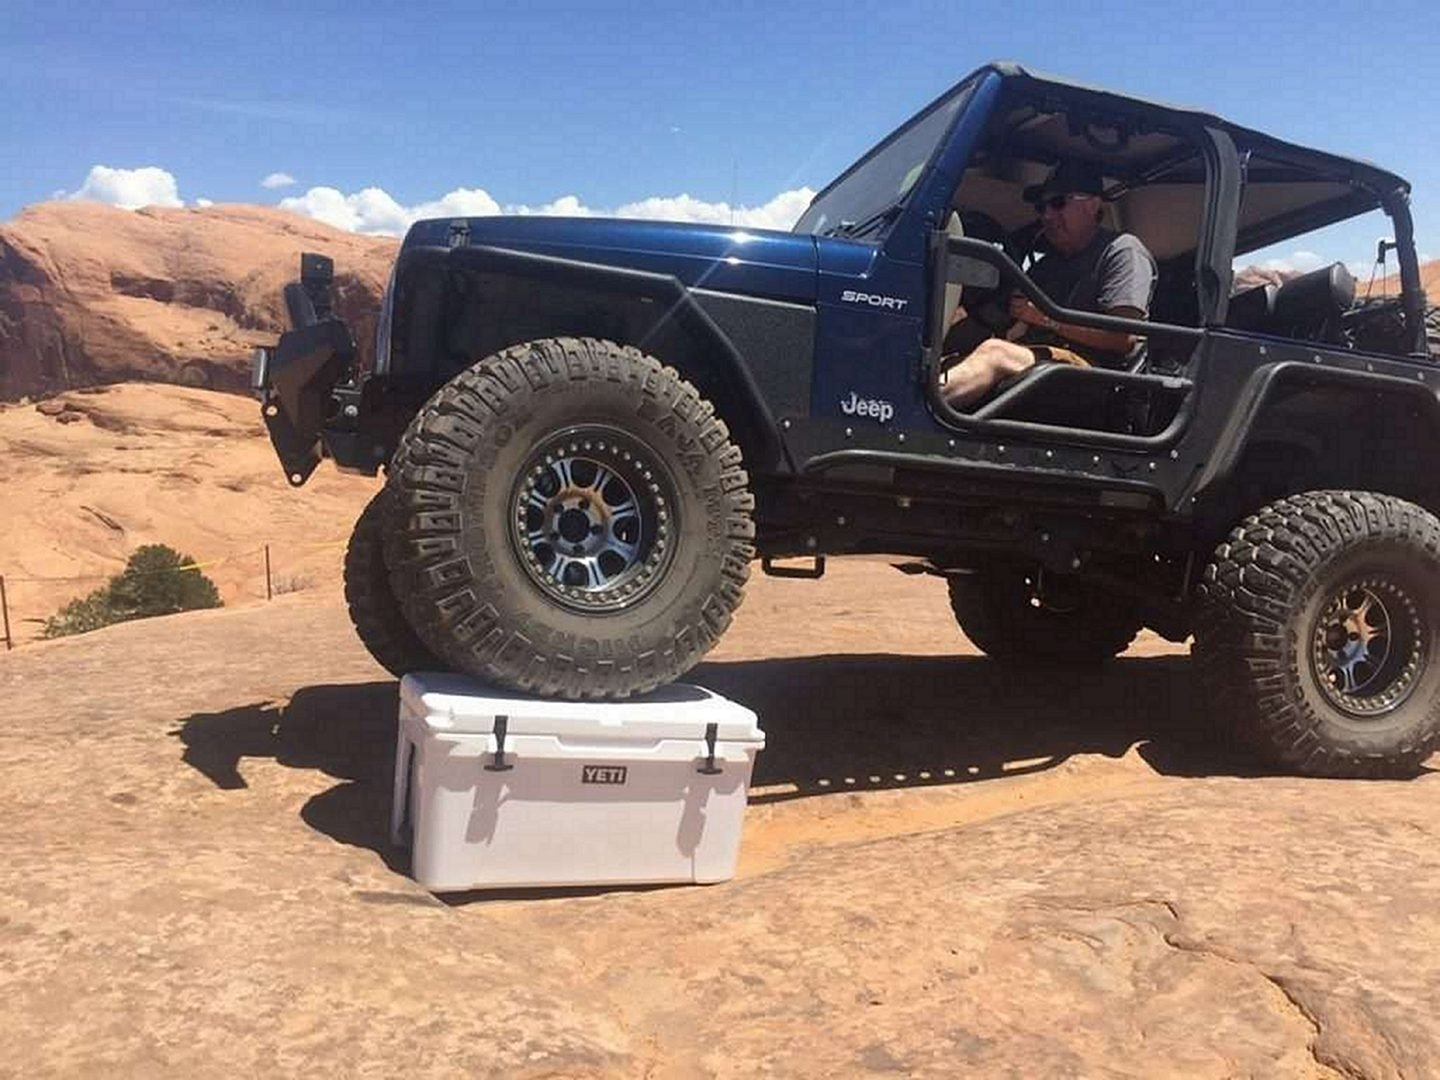 Durability of a Yeti Cooler Being Tested by a Jeep